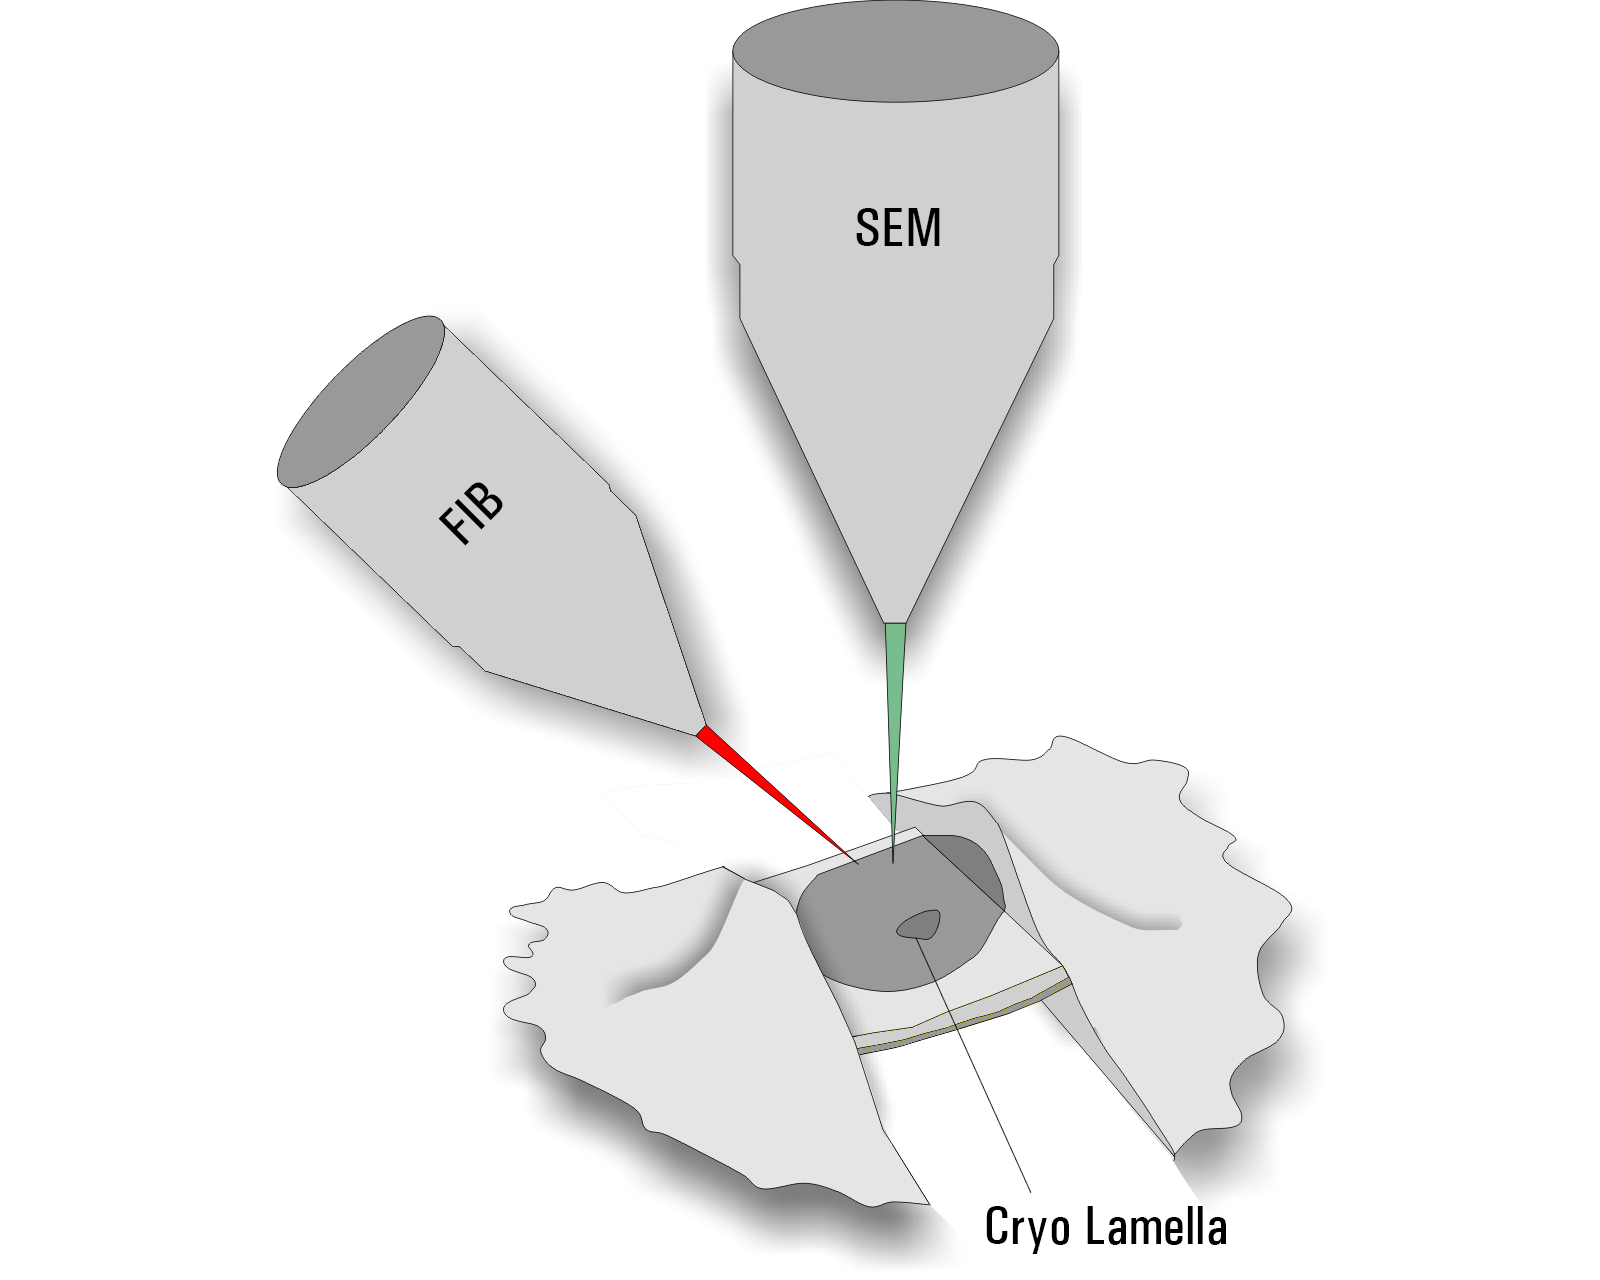 Milling. Diagram of the Thermo Scientific Aquilos DualBeam electron microscope. The vertical scanning electron beam is used for imaging of the sample (SEM) and the focused ion beam (FIB) for milling a thin ice sheet into the cell. The result is a 200-300 nm thin on-grid lamella.